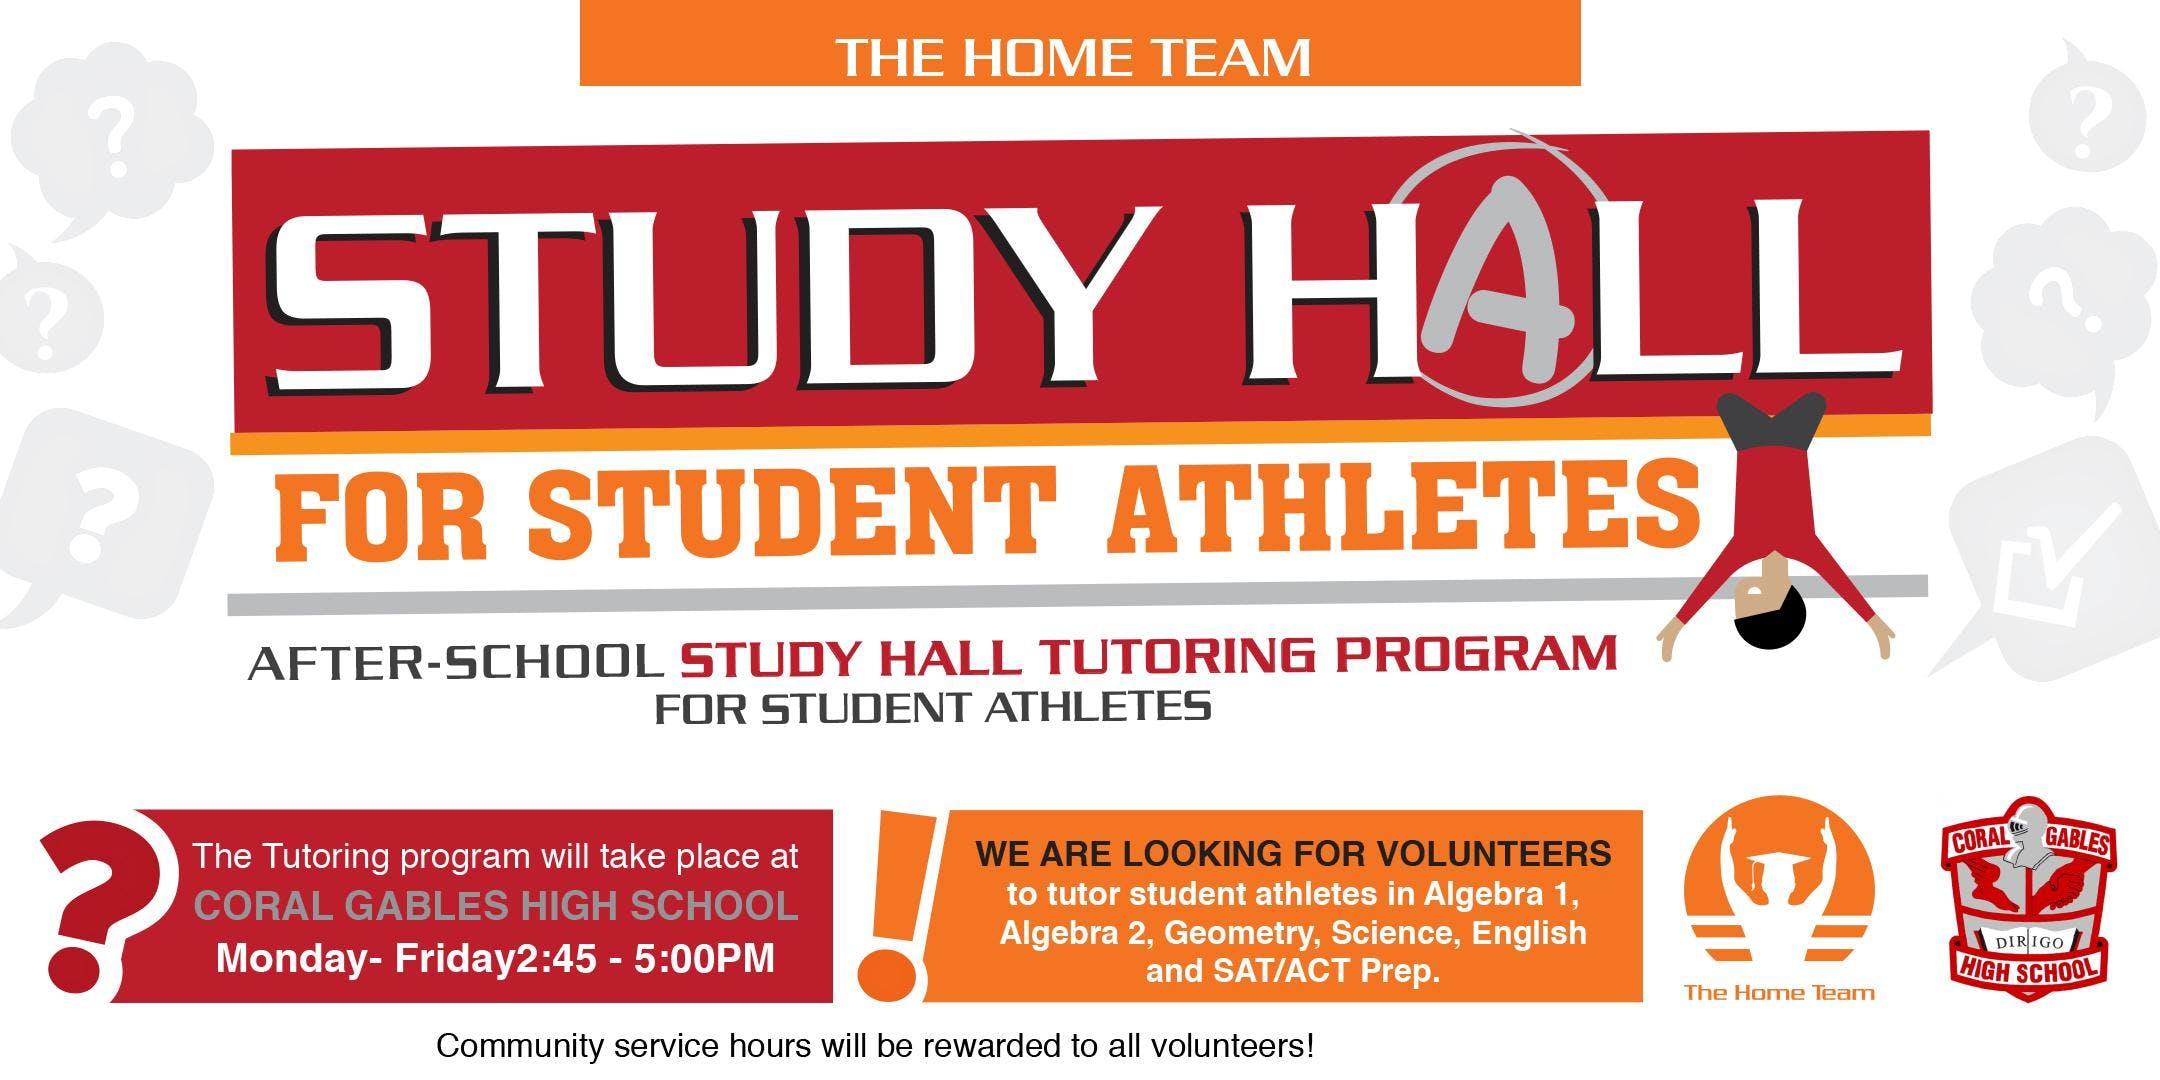 Coral Gables High School Student Athlete Tutoring Program